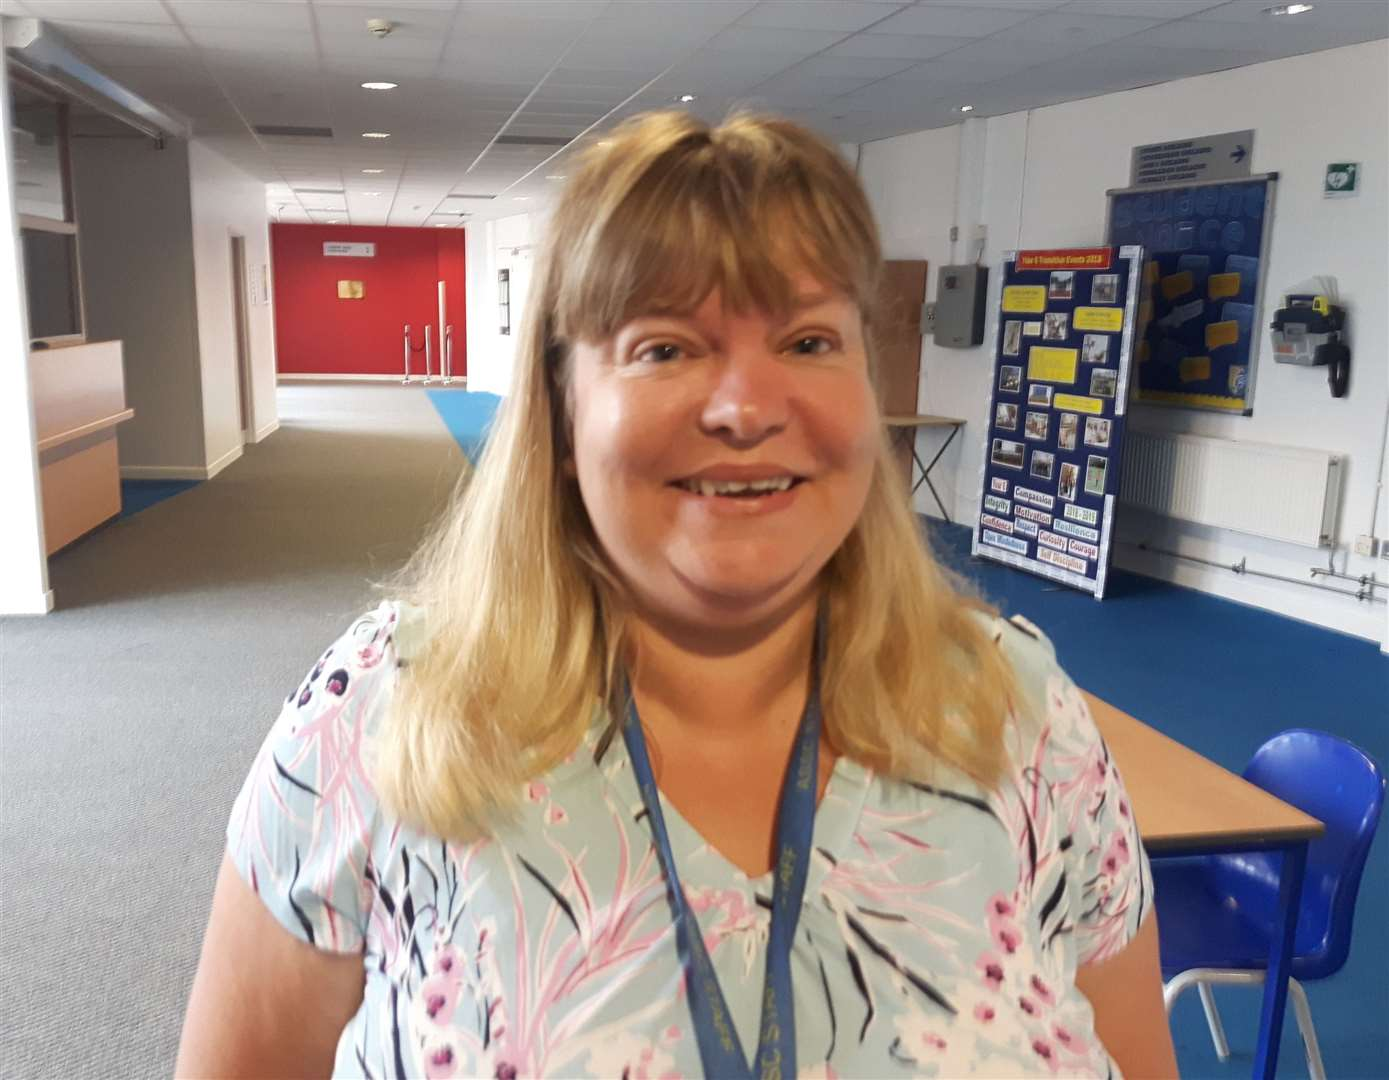 Head teacher at Aylesford School, Tanya Kelvie